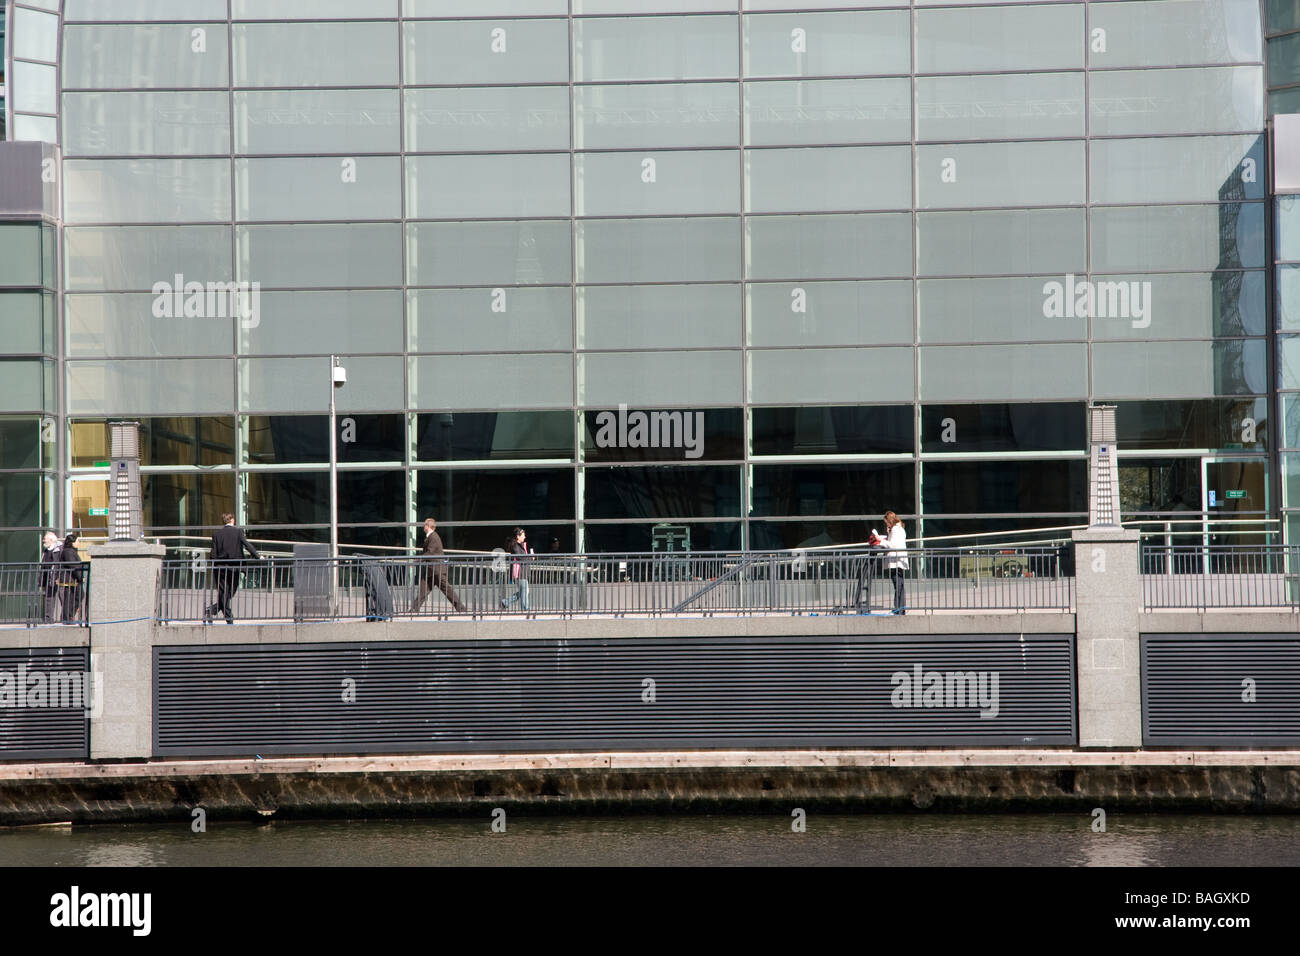 bankers outside office smoking relaxing canopy hot Heron Quay Docklands Isle of Dogs London - Stock Image